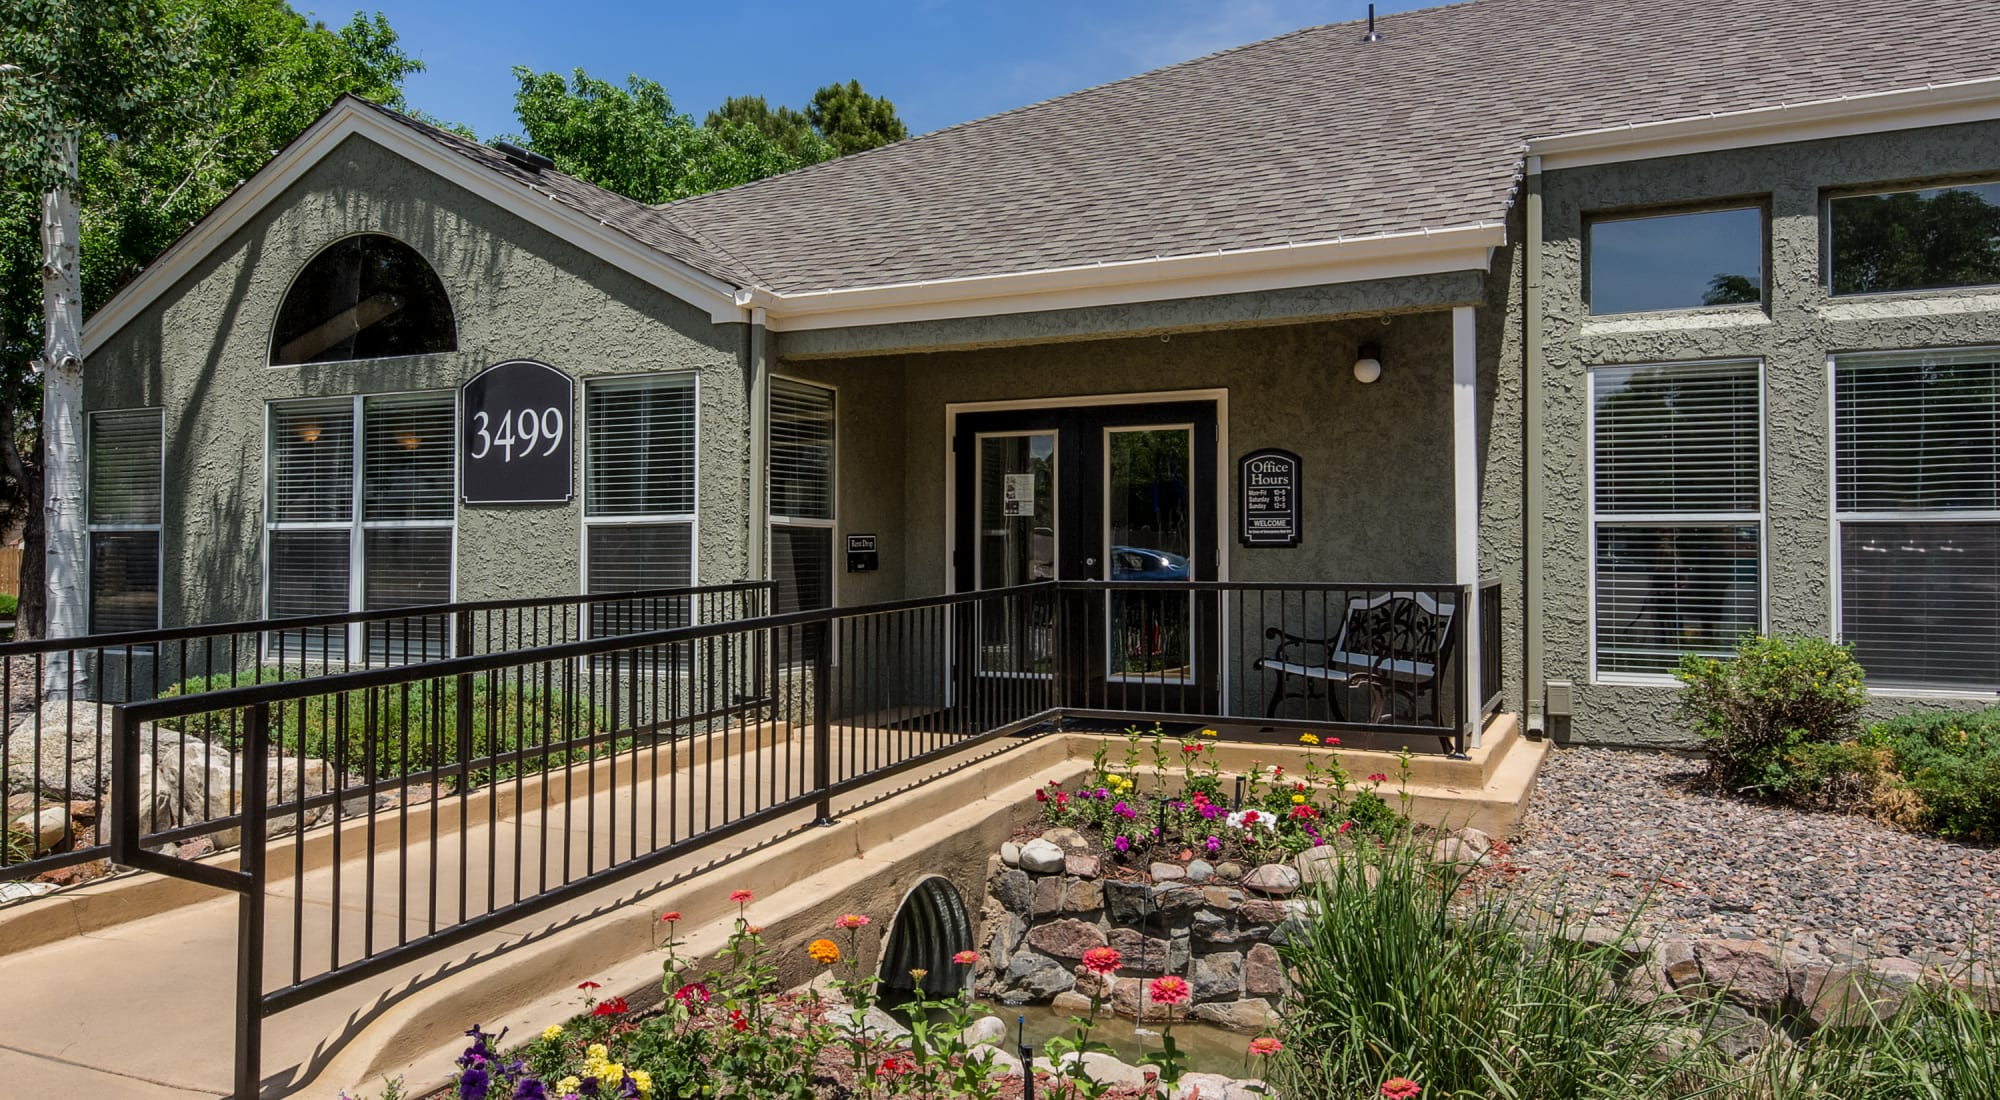 Apply to live at Waterfield Court Apartment Homes in Aurora, Colorado